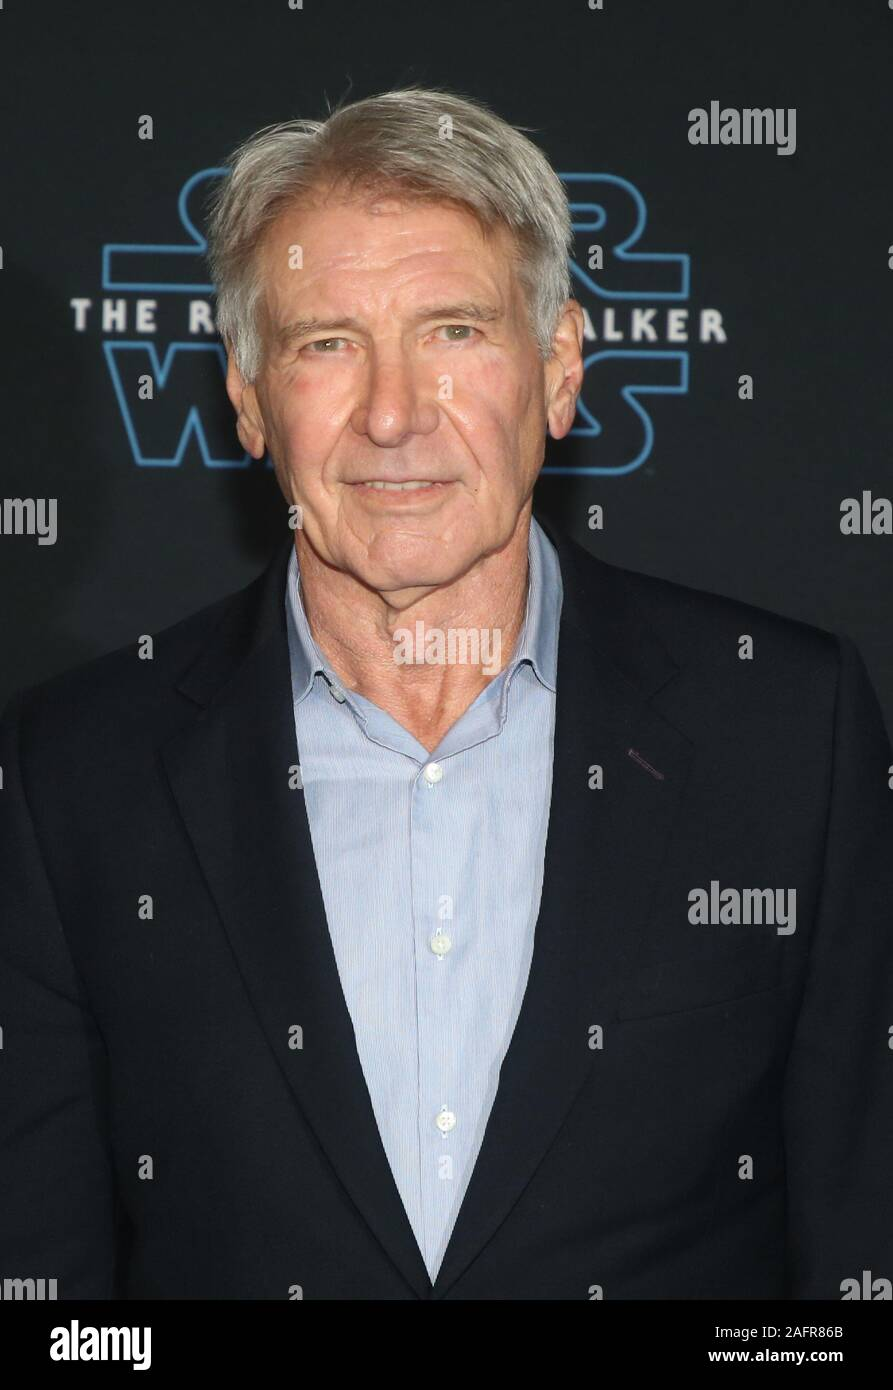 Hollywood Ca 16th Dec 2019 Harrison Ford At Star Wars The Rise Of Skywalker Premiere At El Capitan Theater In Hollywood California On December 16 2019 Credit Faye Sadou Media Punch Alamy Live News